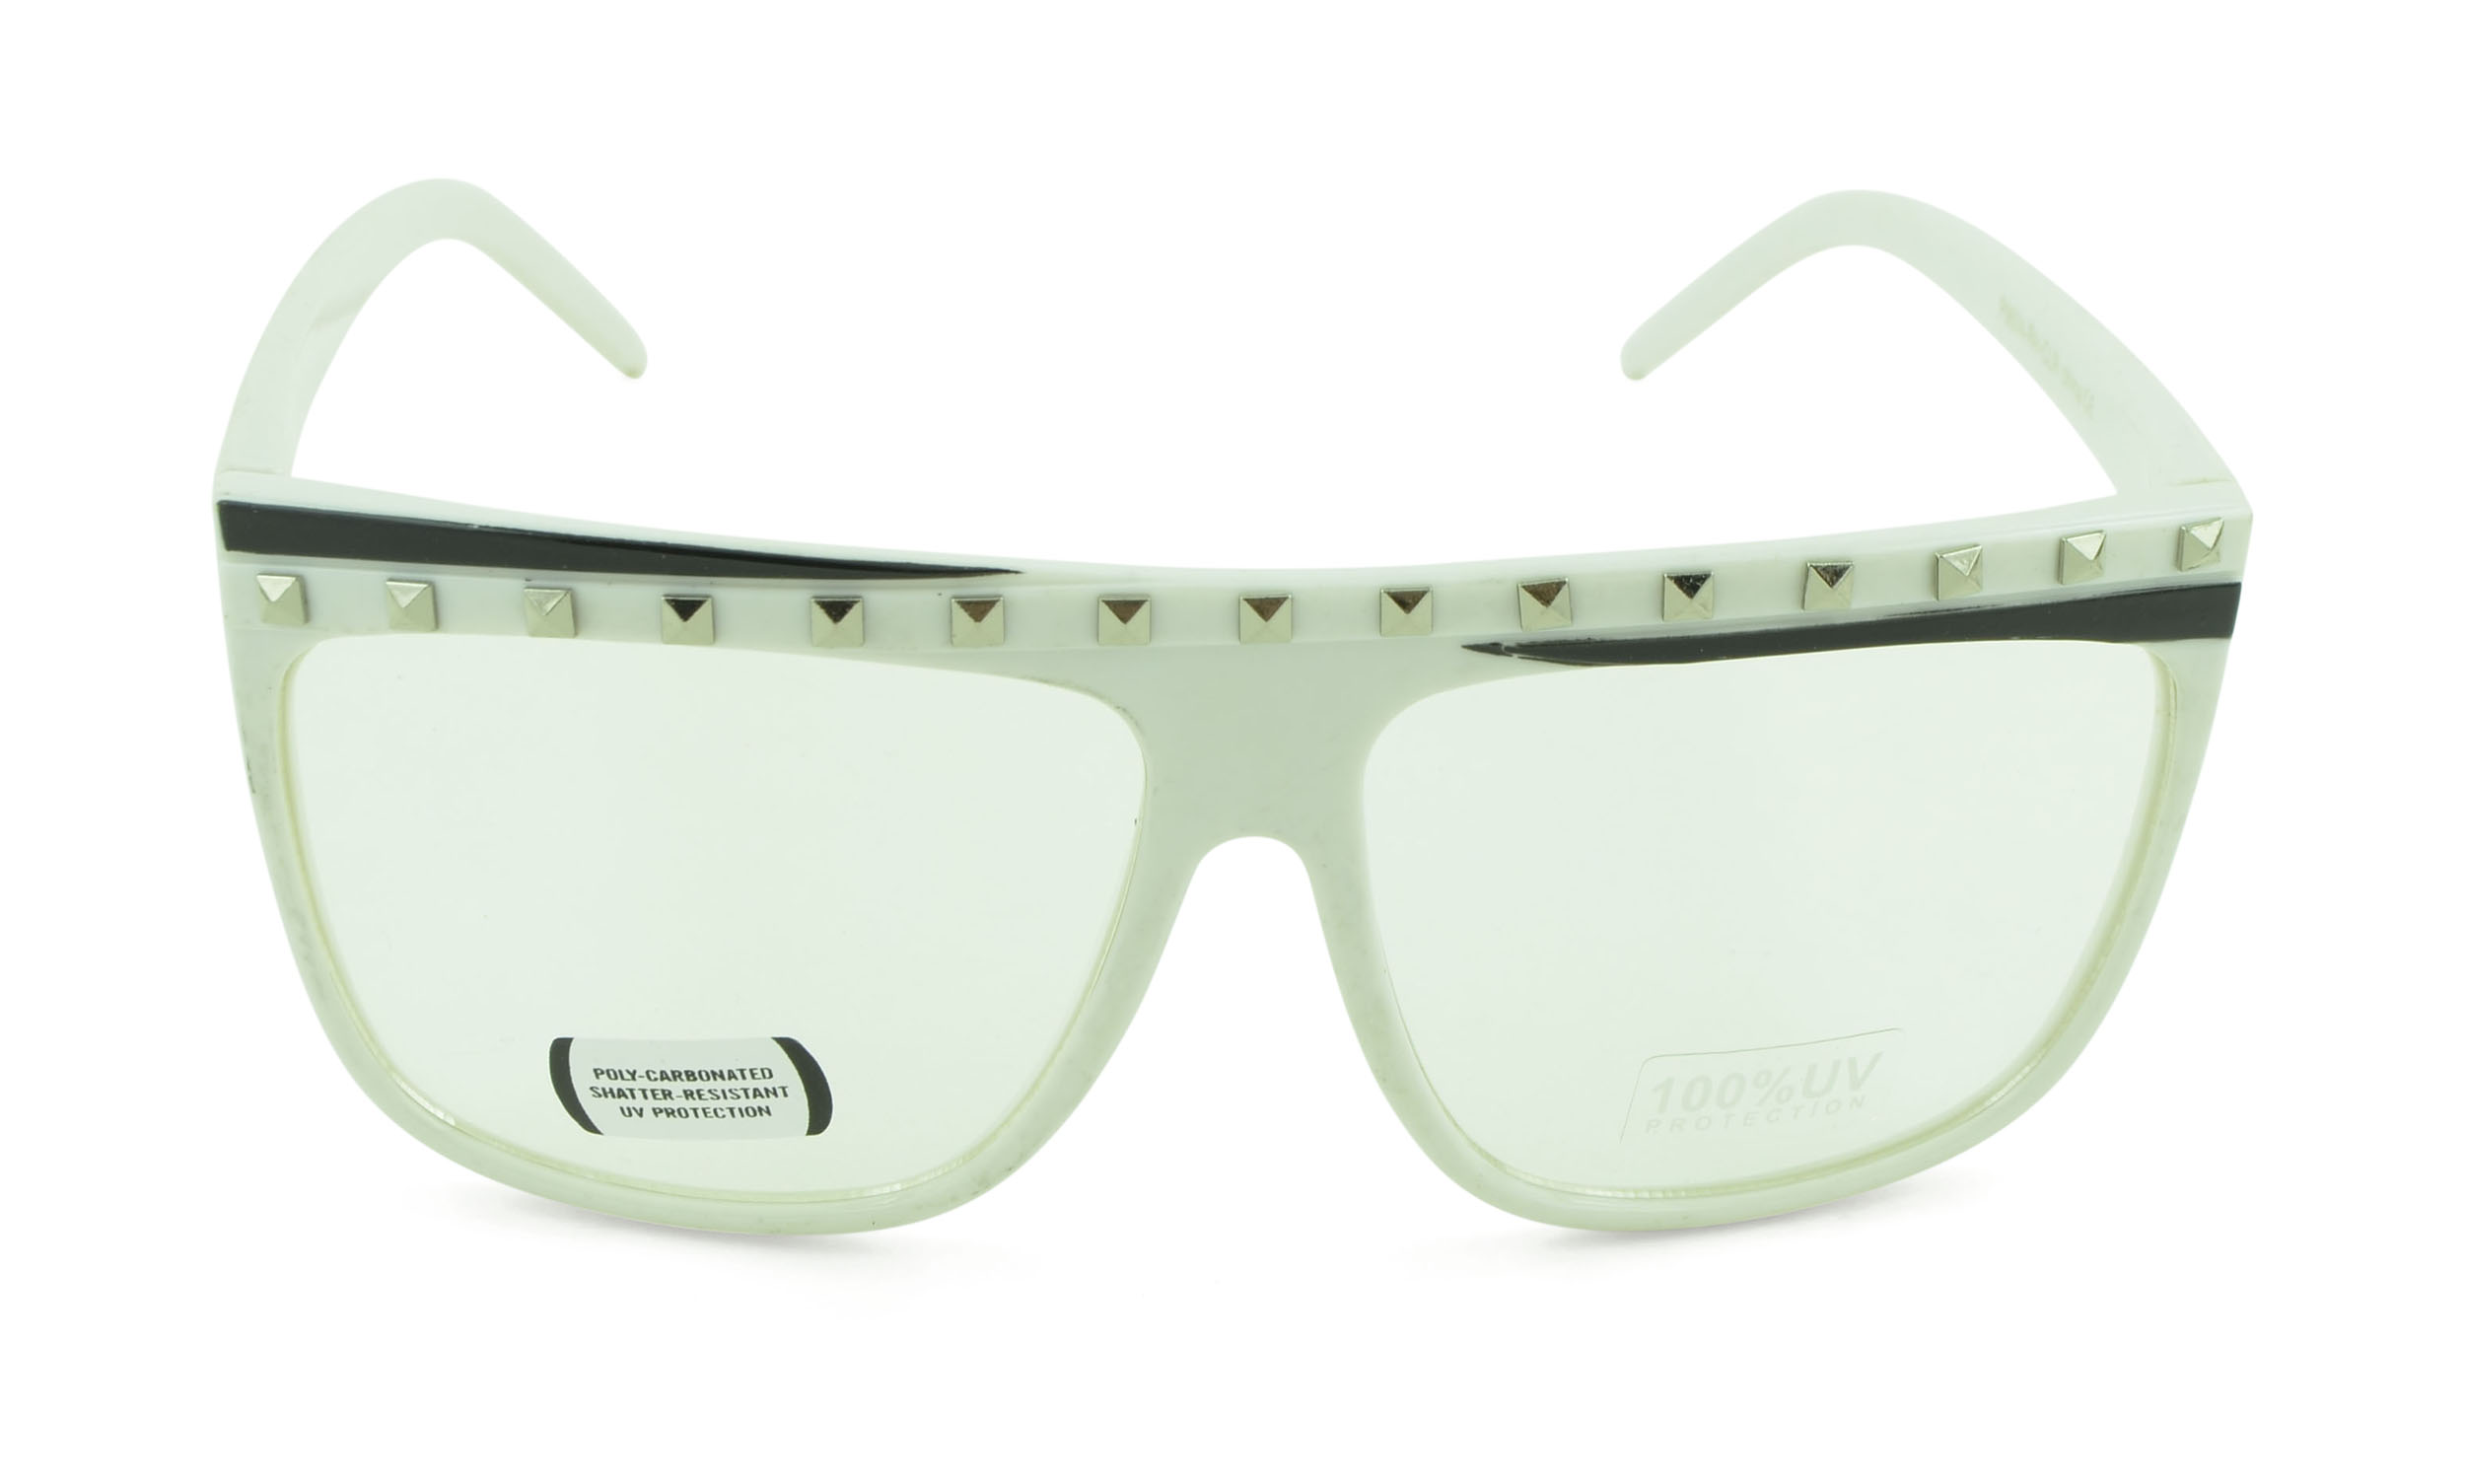 Belle Donne-Unisex Trendy Fun Colorful Fashion Party Sunglasses - White2